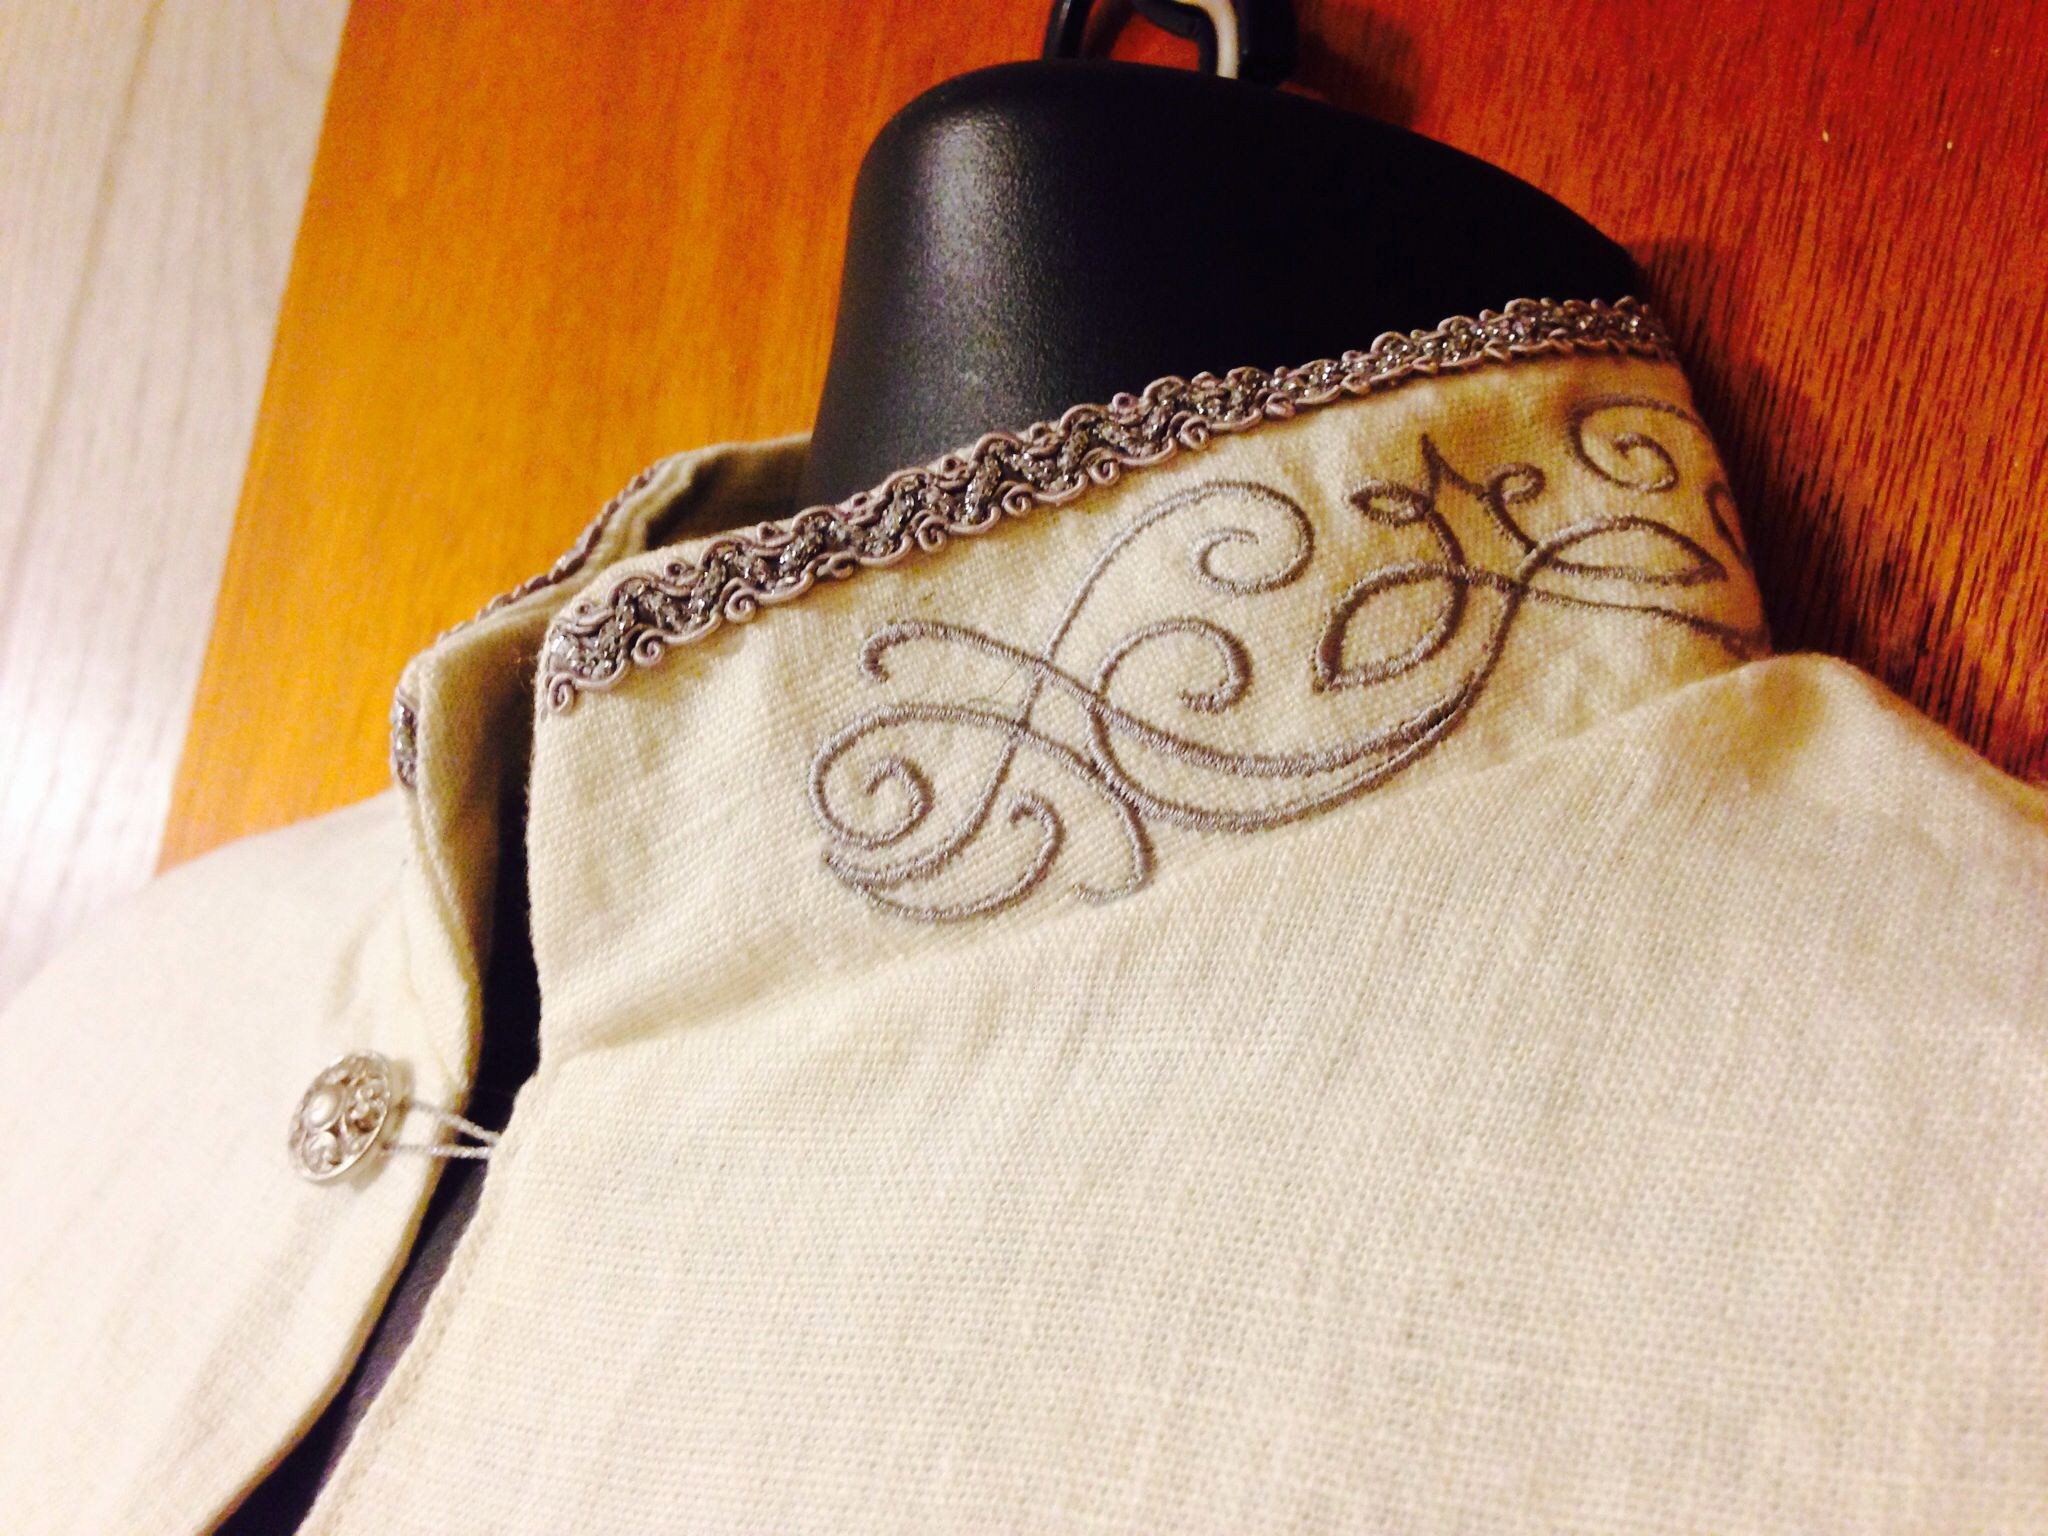 Linen elven under-robe, collar with embroidery